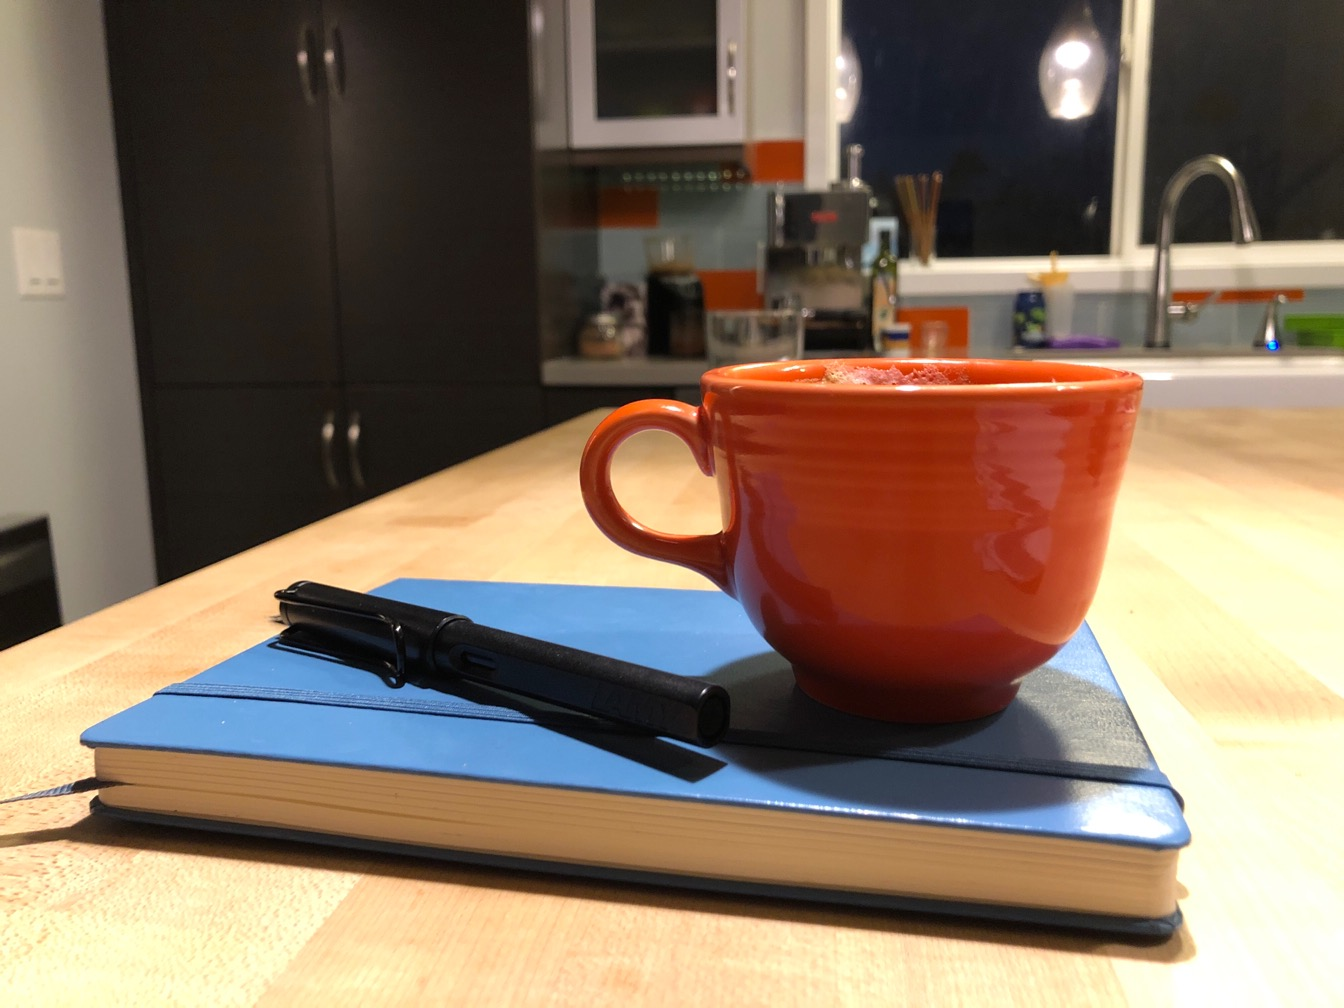 Photo of an orange coffee cup and a blue journal on a countertop.